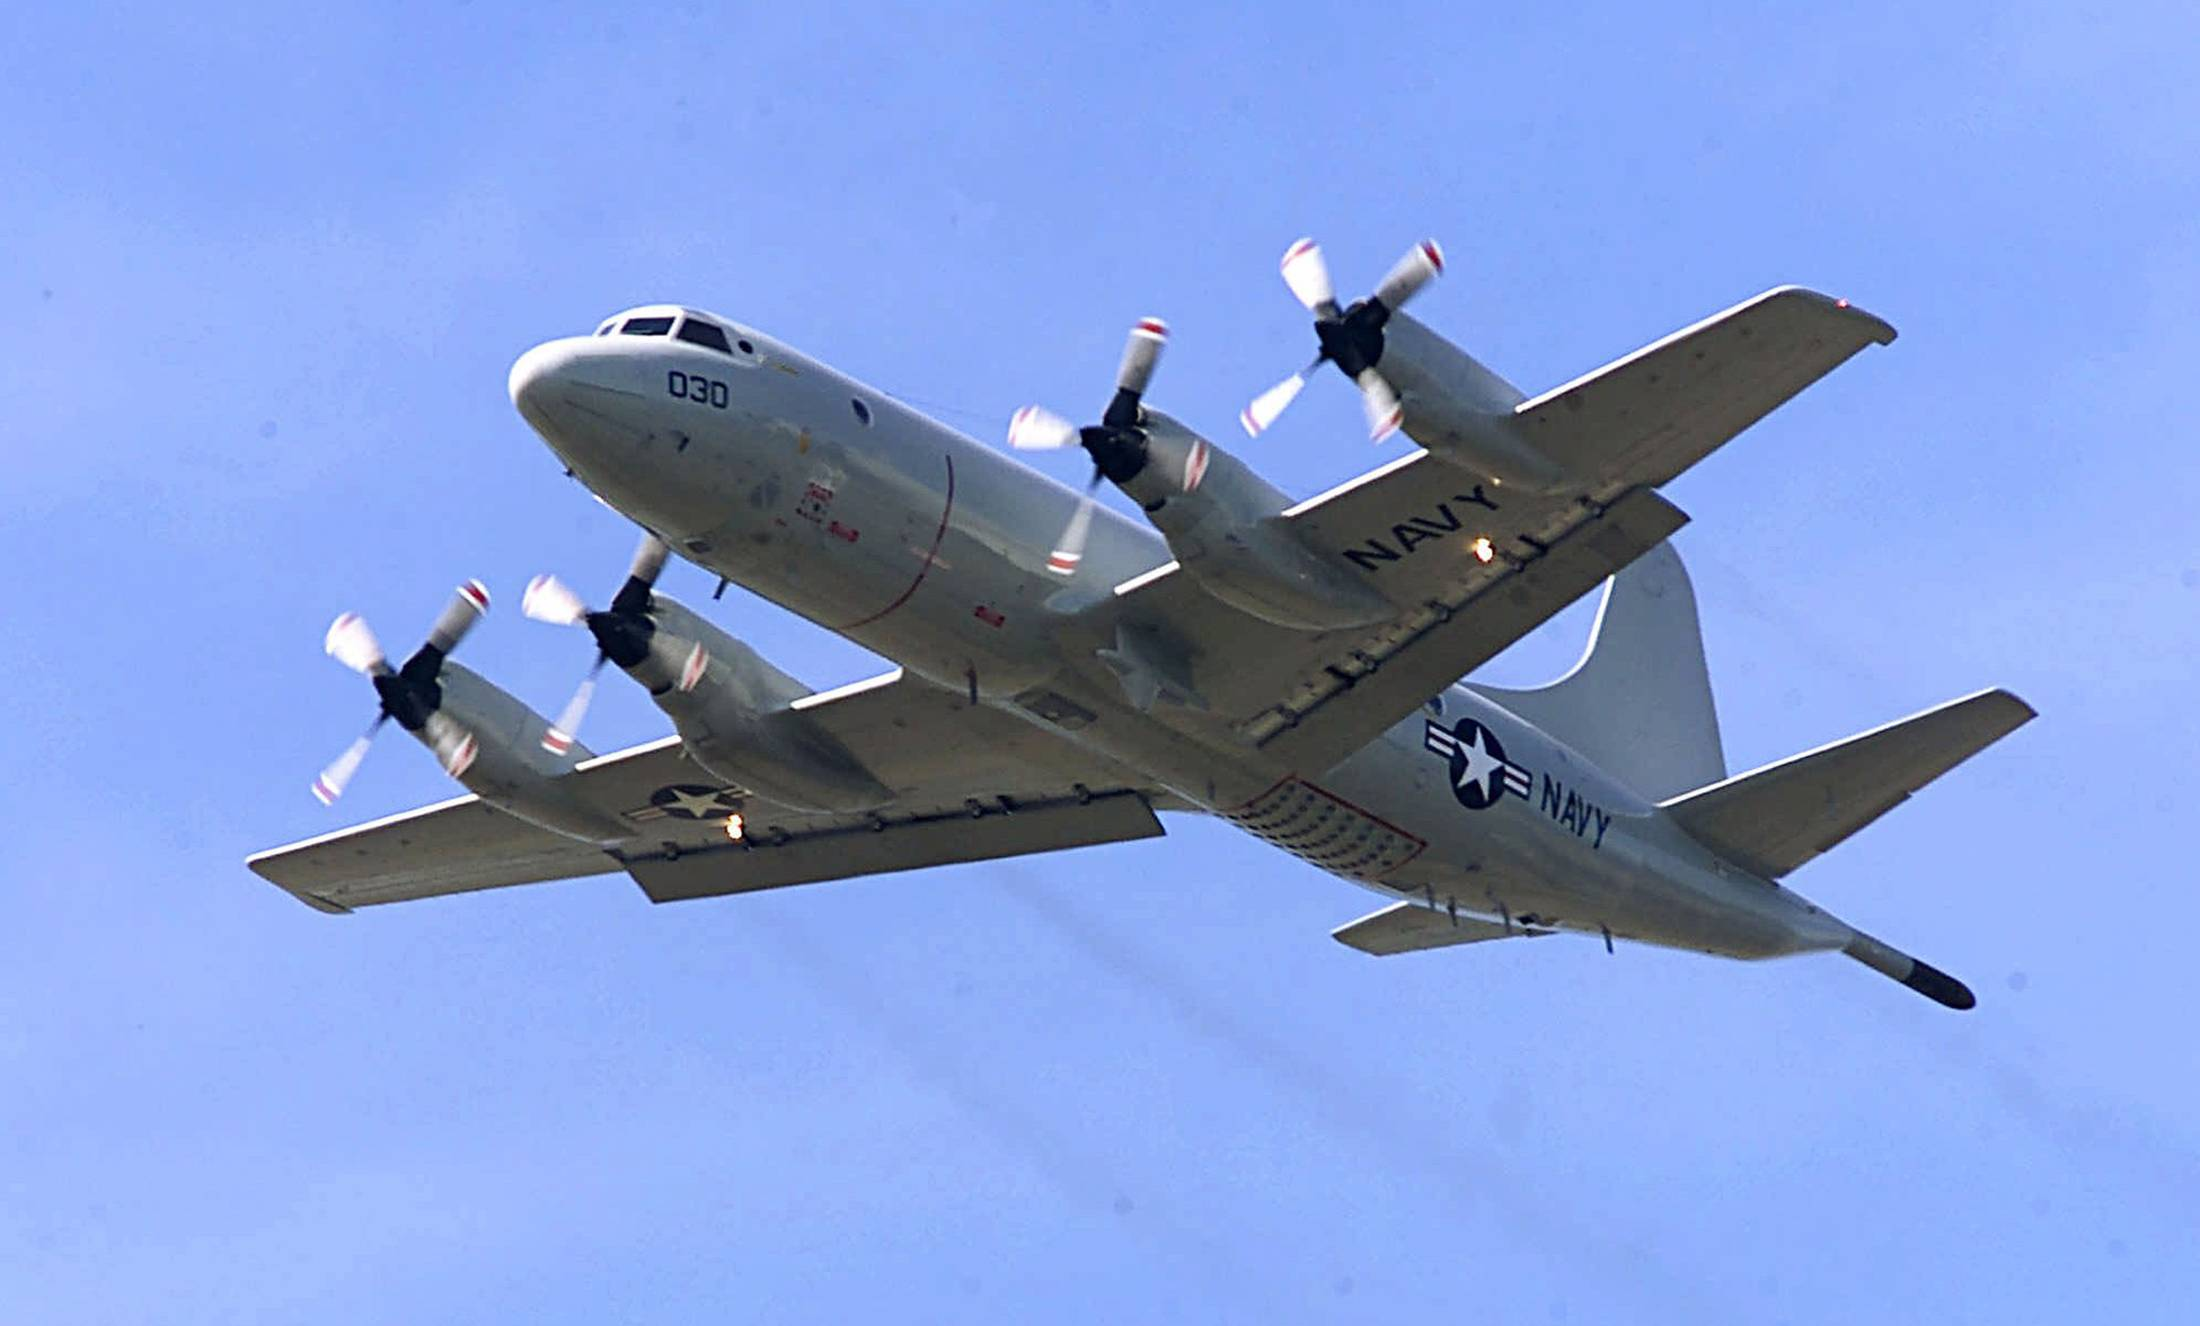 A P-3C Orion. The similar type of the P-3 Orion, favored by the Australian and New Zealand defense forces, is being used in the search for the Malaysia Airlines Flight 370 which went missing on March 8, 2014, off the west coast of Australia. Because the search area is so remote, it's an eight-hour round trip, leaving the planes just two or three hours to search.